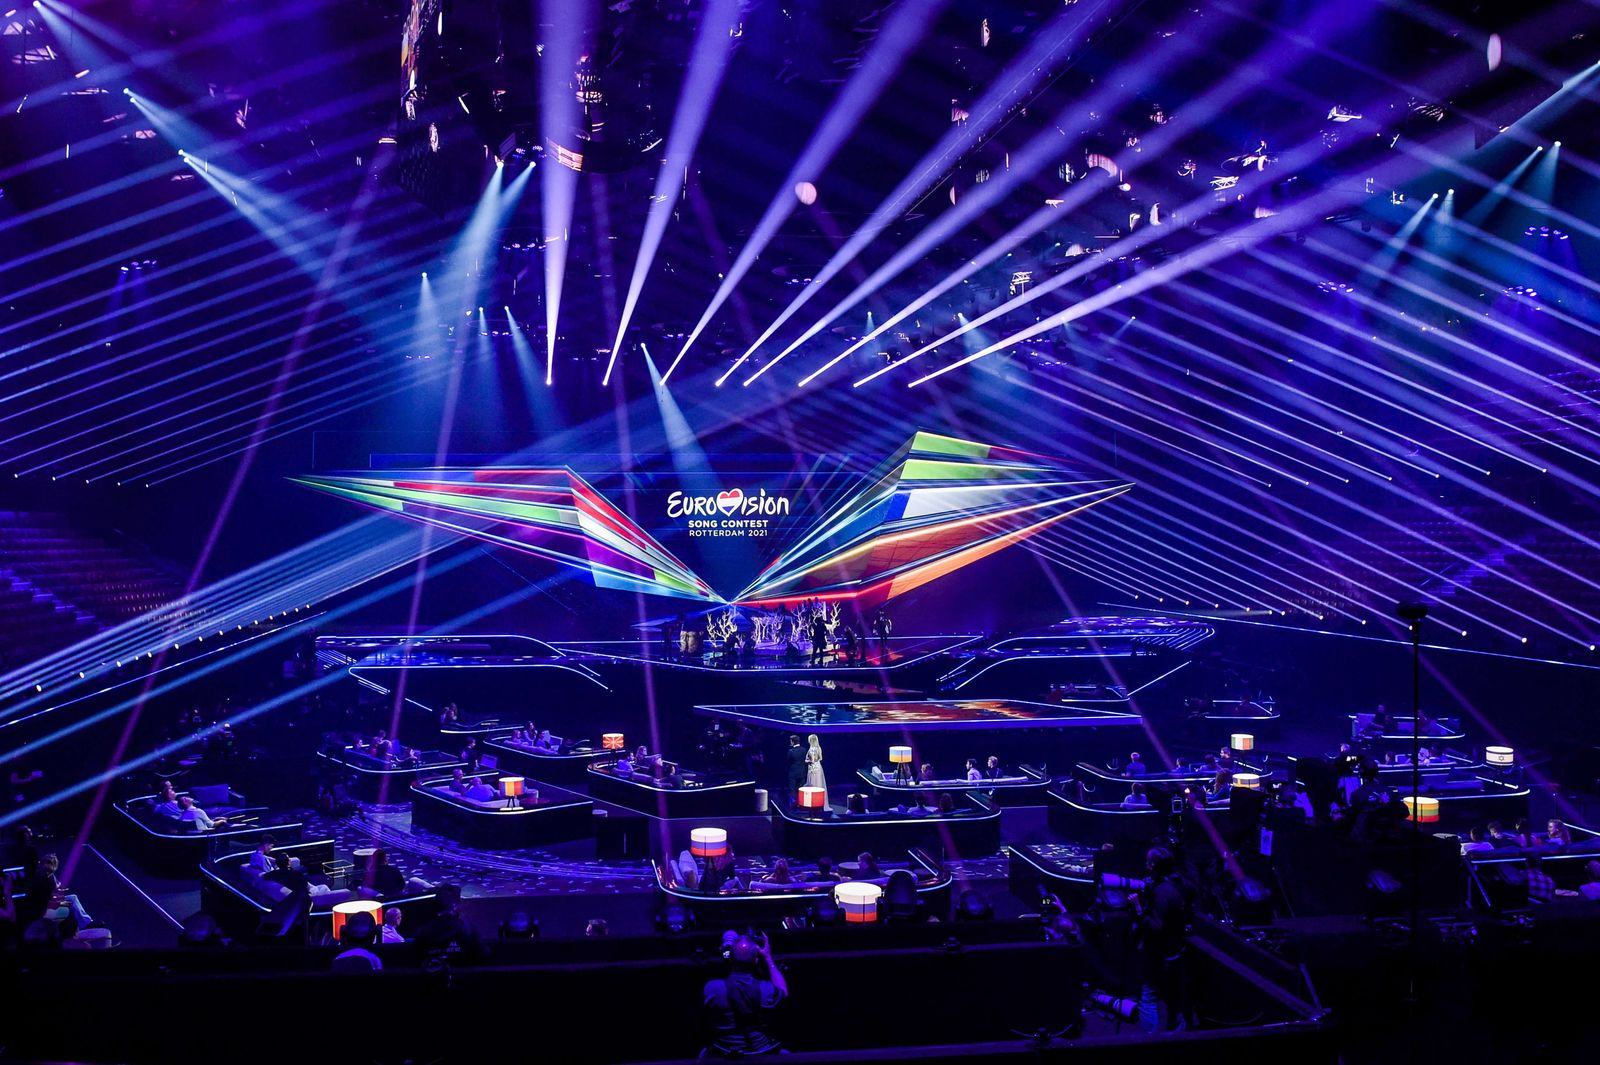 Rehearsals - 65th Eurovision Song Contest